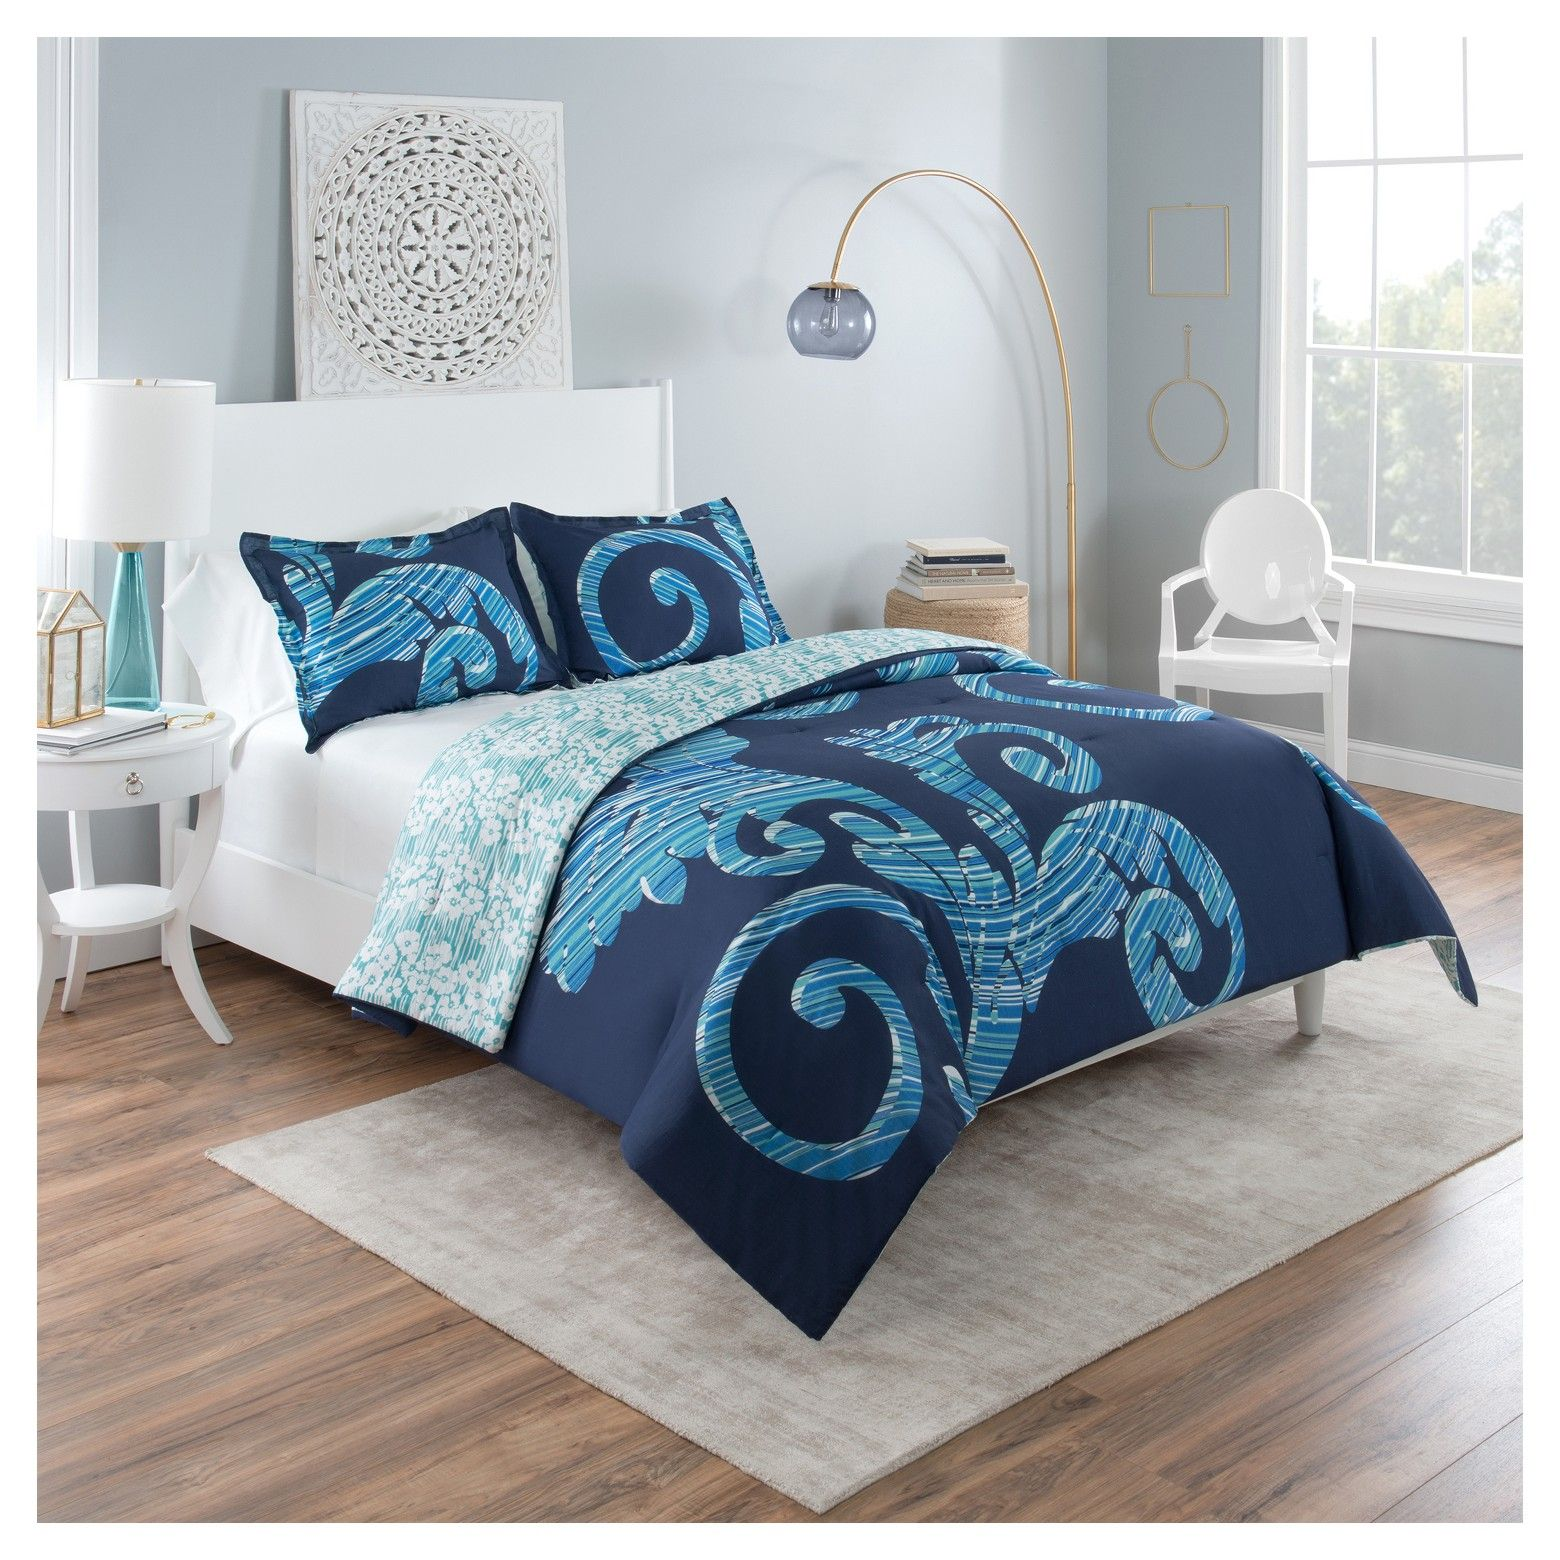 Shop Target for comforters you will love at great low